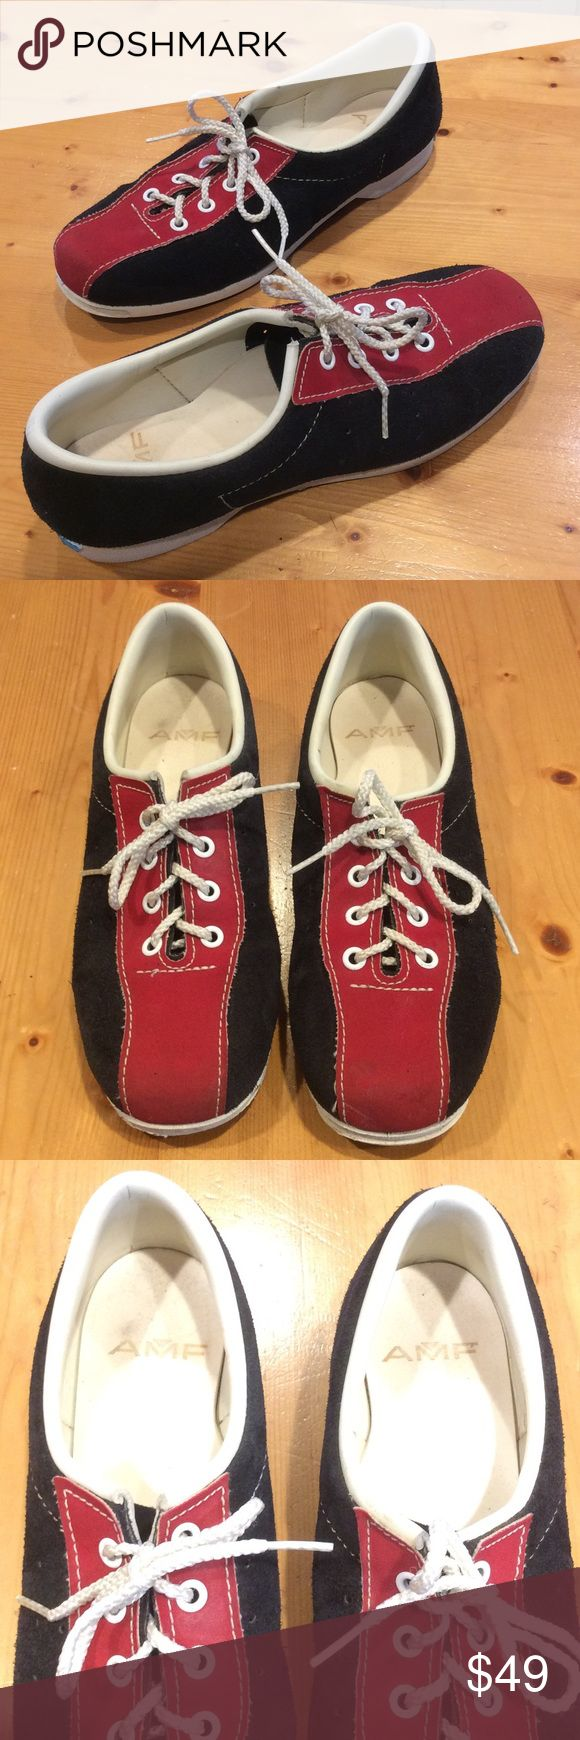 AMF VINTAGE BOWLING SHOES These older suede bowling shoes are great,I only wish they fit me,as I bought them off Posh thinking their 8.5 would fit my usual 8.5, but they fit quite tight like an 8 maybe. They're in pretty nice condition for their age,and fairly clean too! AMF Shoes Athletic Shoes